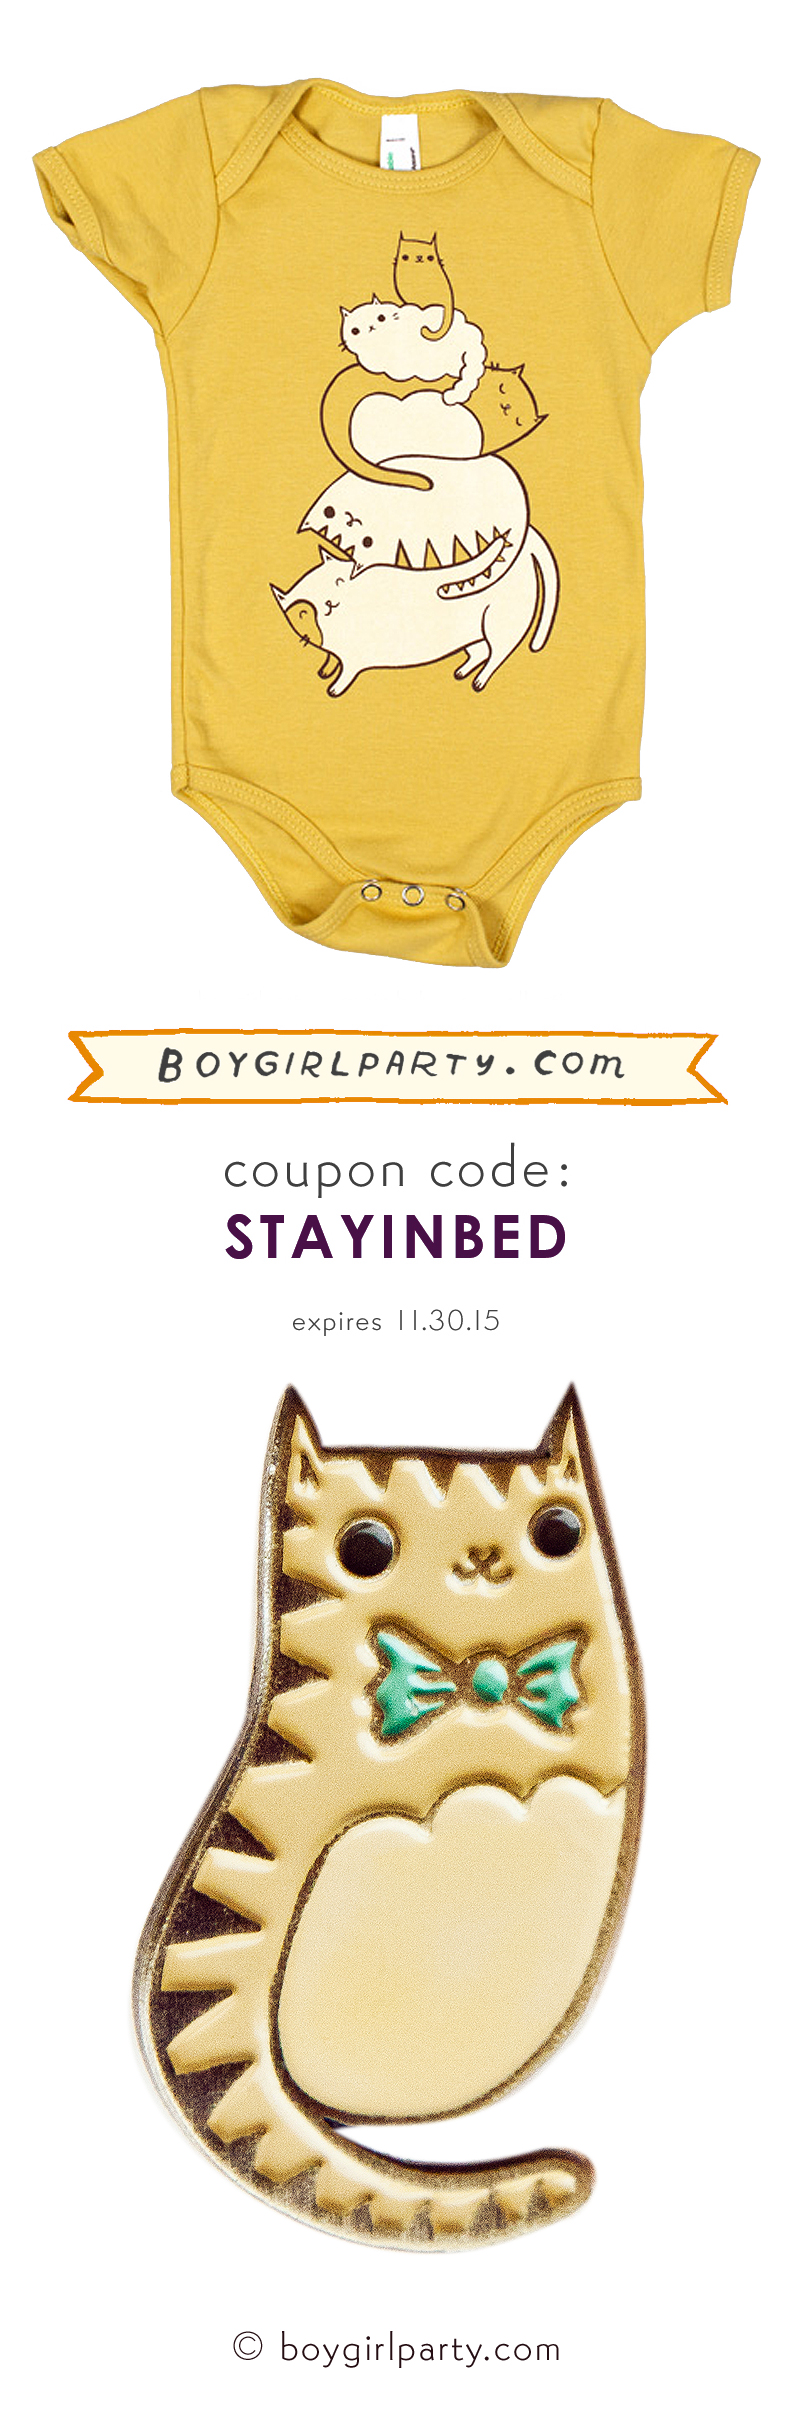 http://shop.boygirlparty.com coupon code STAYINBED #CyberMonday is on! Expiring 11/30/15